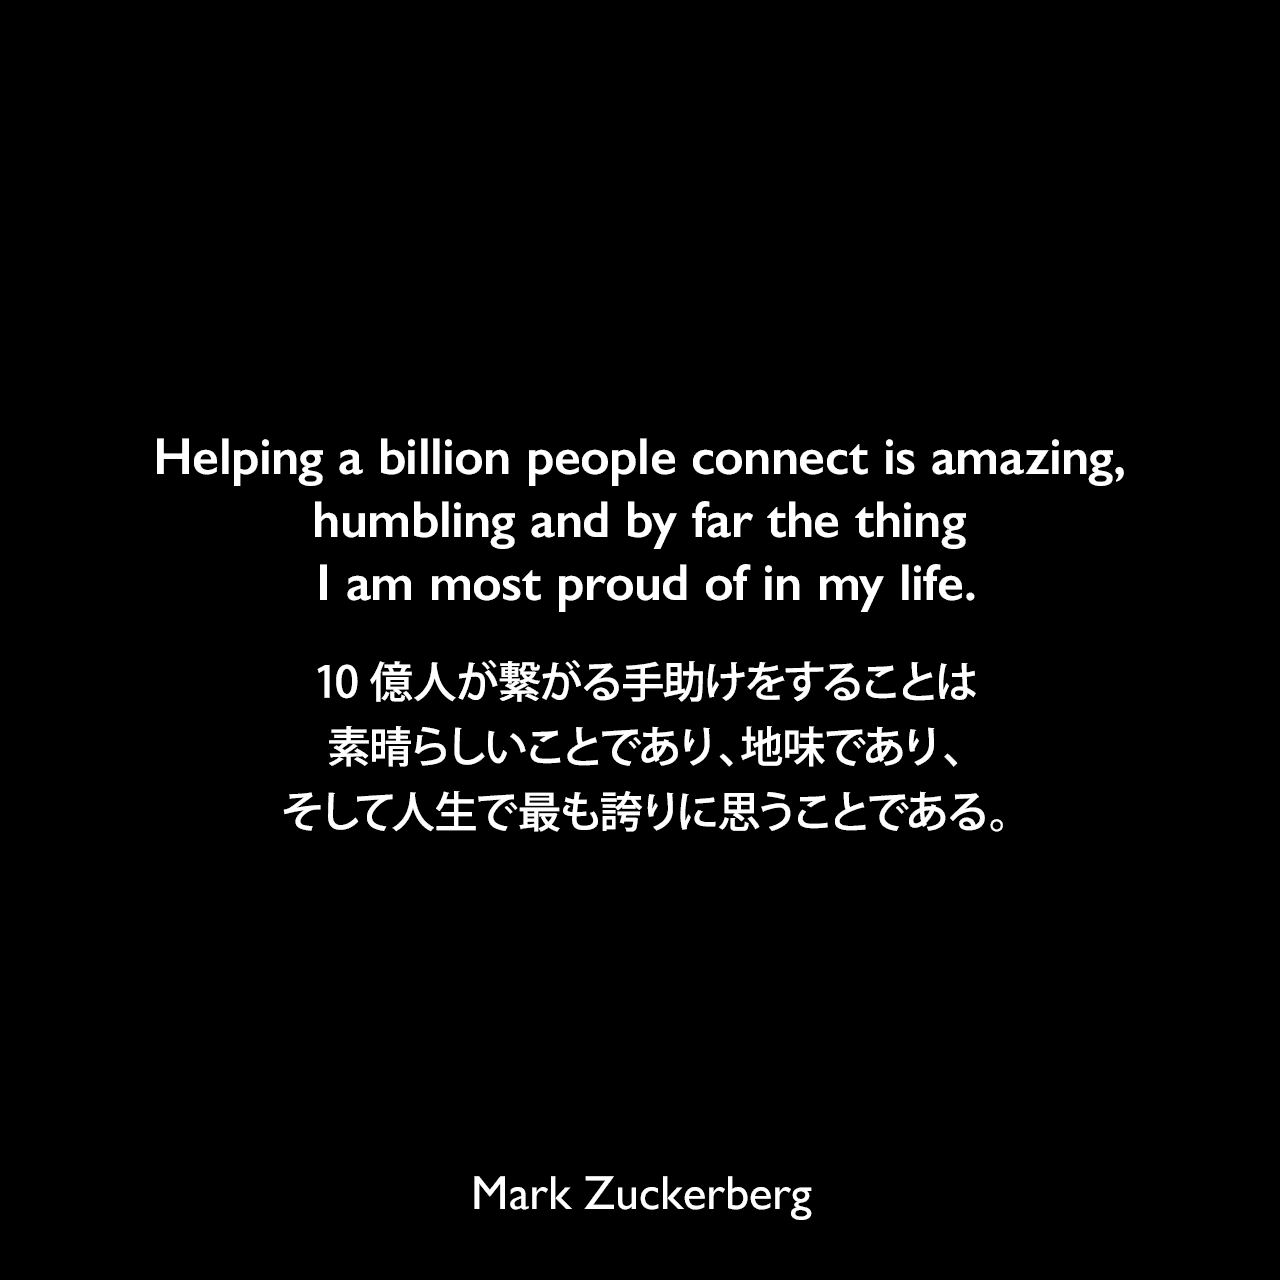 Helping a billion people connect is amazing, humbling and by far the thing I am most proud of in my life.10億人が繋がる手助けをすることは素晴らしいことであり、地味であり、そして人生で最も誇りに思うことである。Mark Zuckerberg